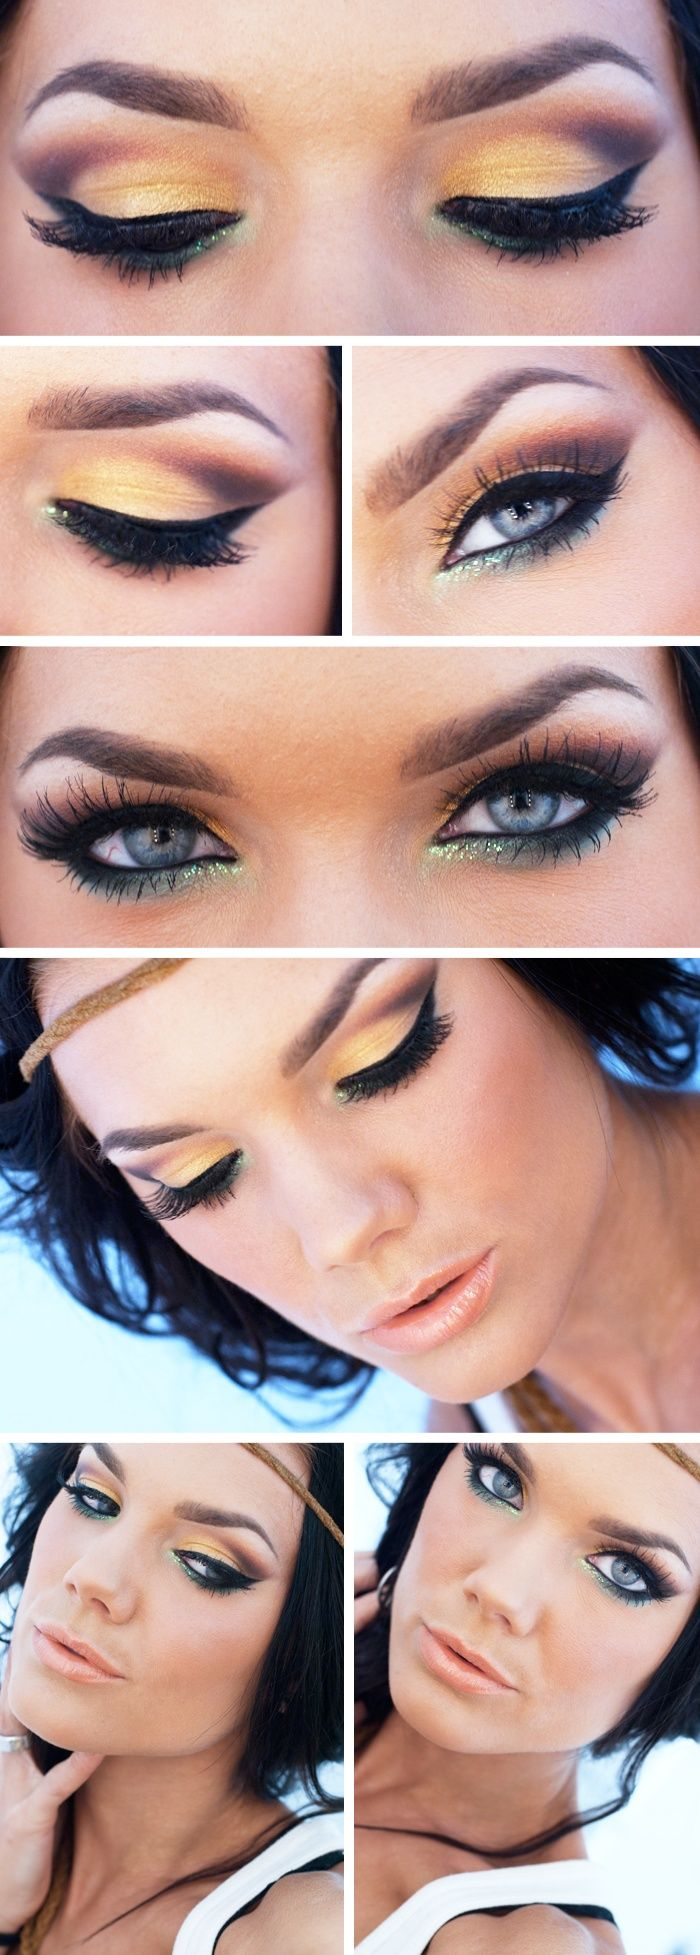 Todays Look I Lost Myself Forever In Your Eyes -Linda Hallberg (a gorgeous summer look of yellow, peach, browns with a splash of soft teal) 03/18/13